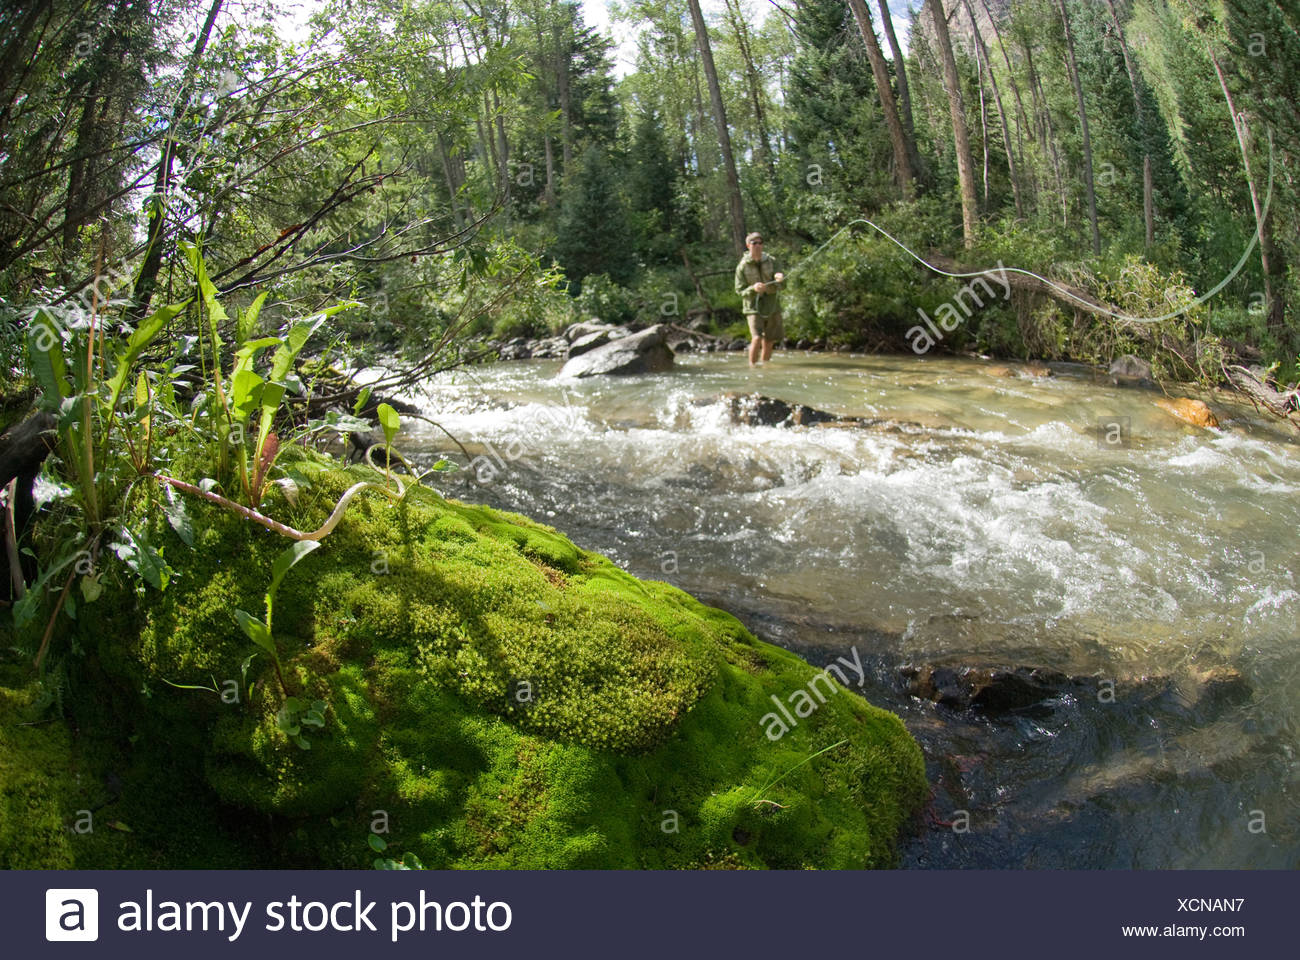 Man fly fishing the Crystal River, Marble, Colorado. - Stock Image